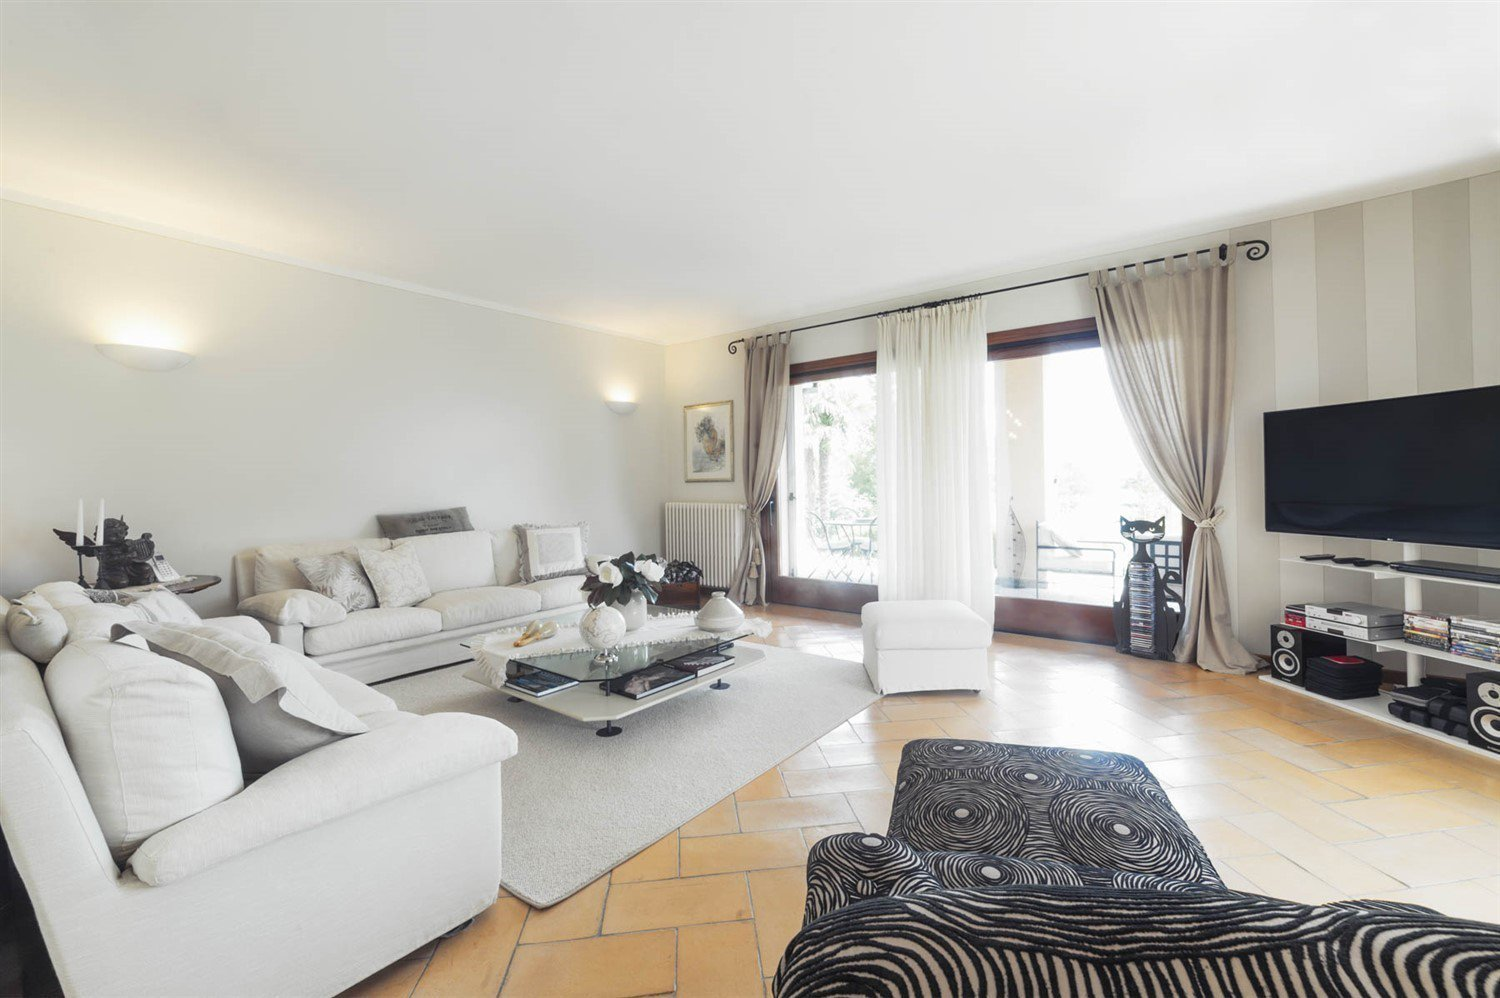 Modern villa for sale on Verbania hill with a panoramic lake view - living room